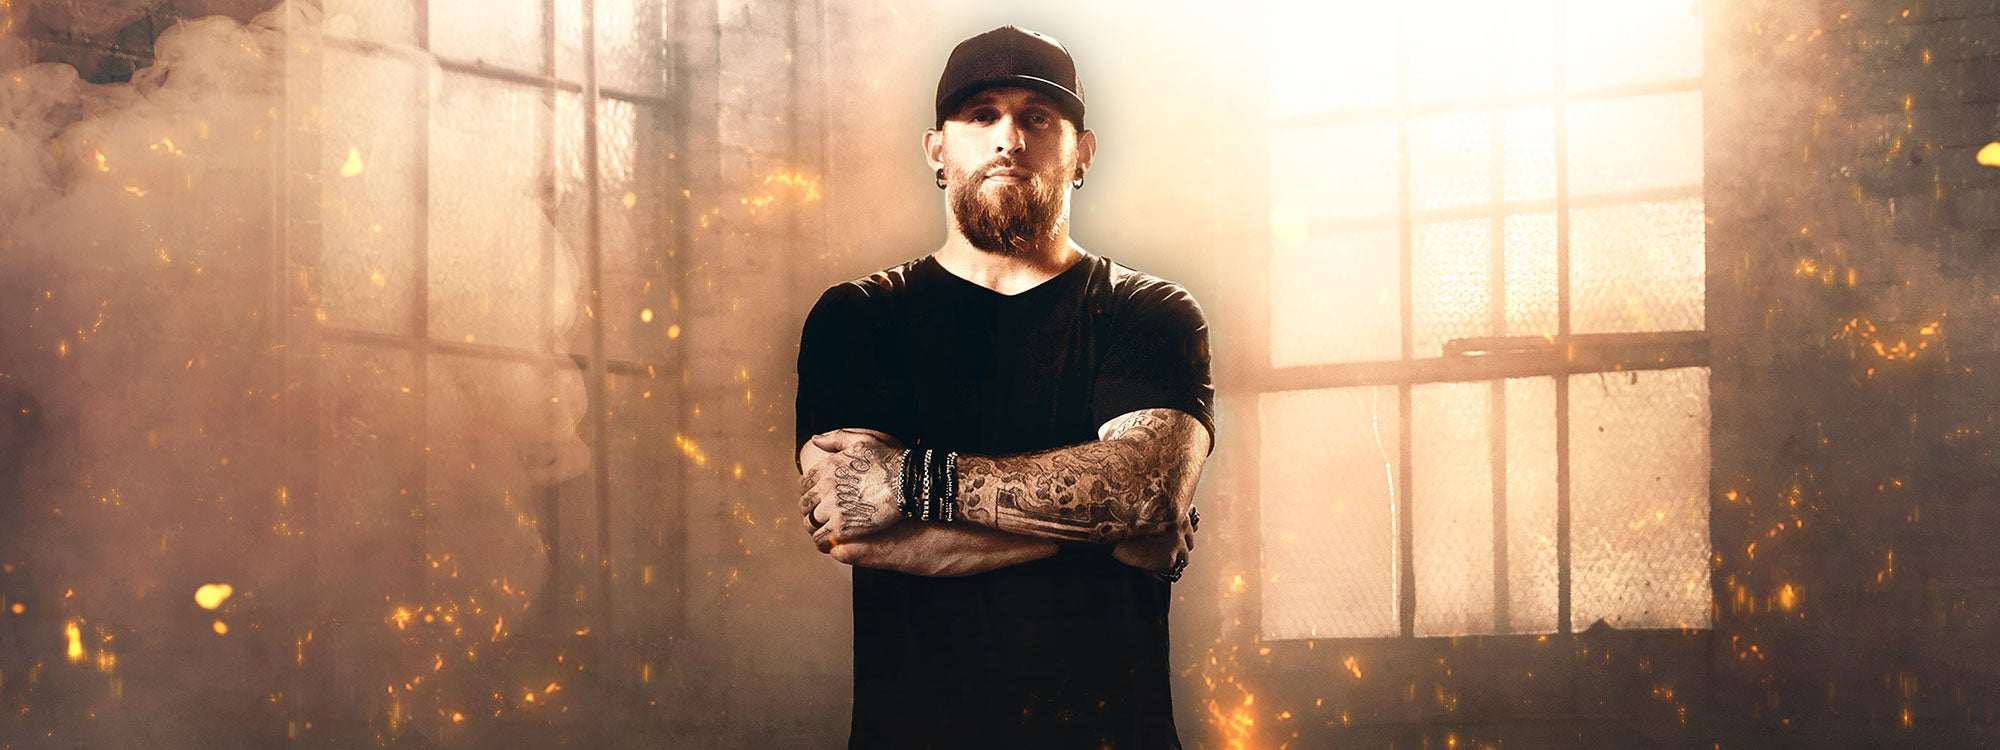 Brantley Gilbert Tour 2020.Brantley Gilbert Tacoma Dome